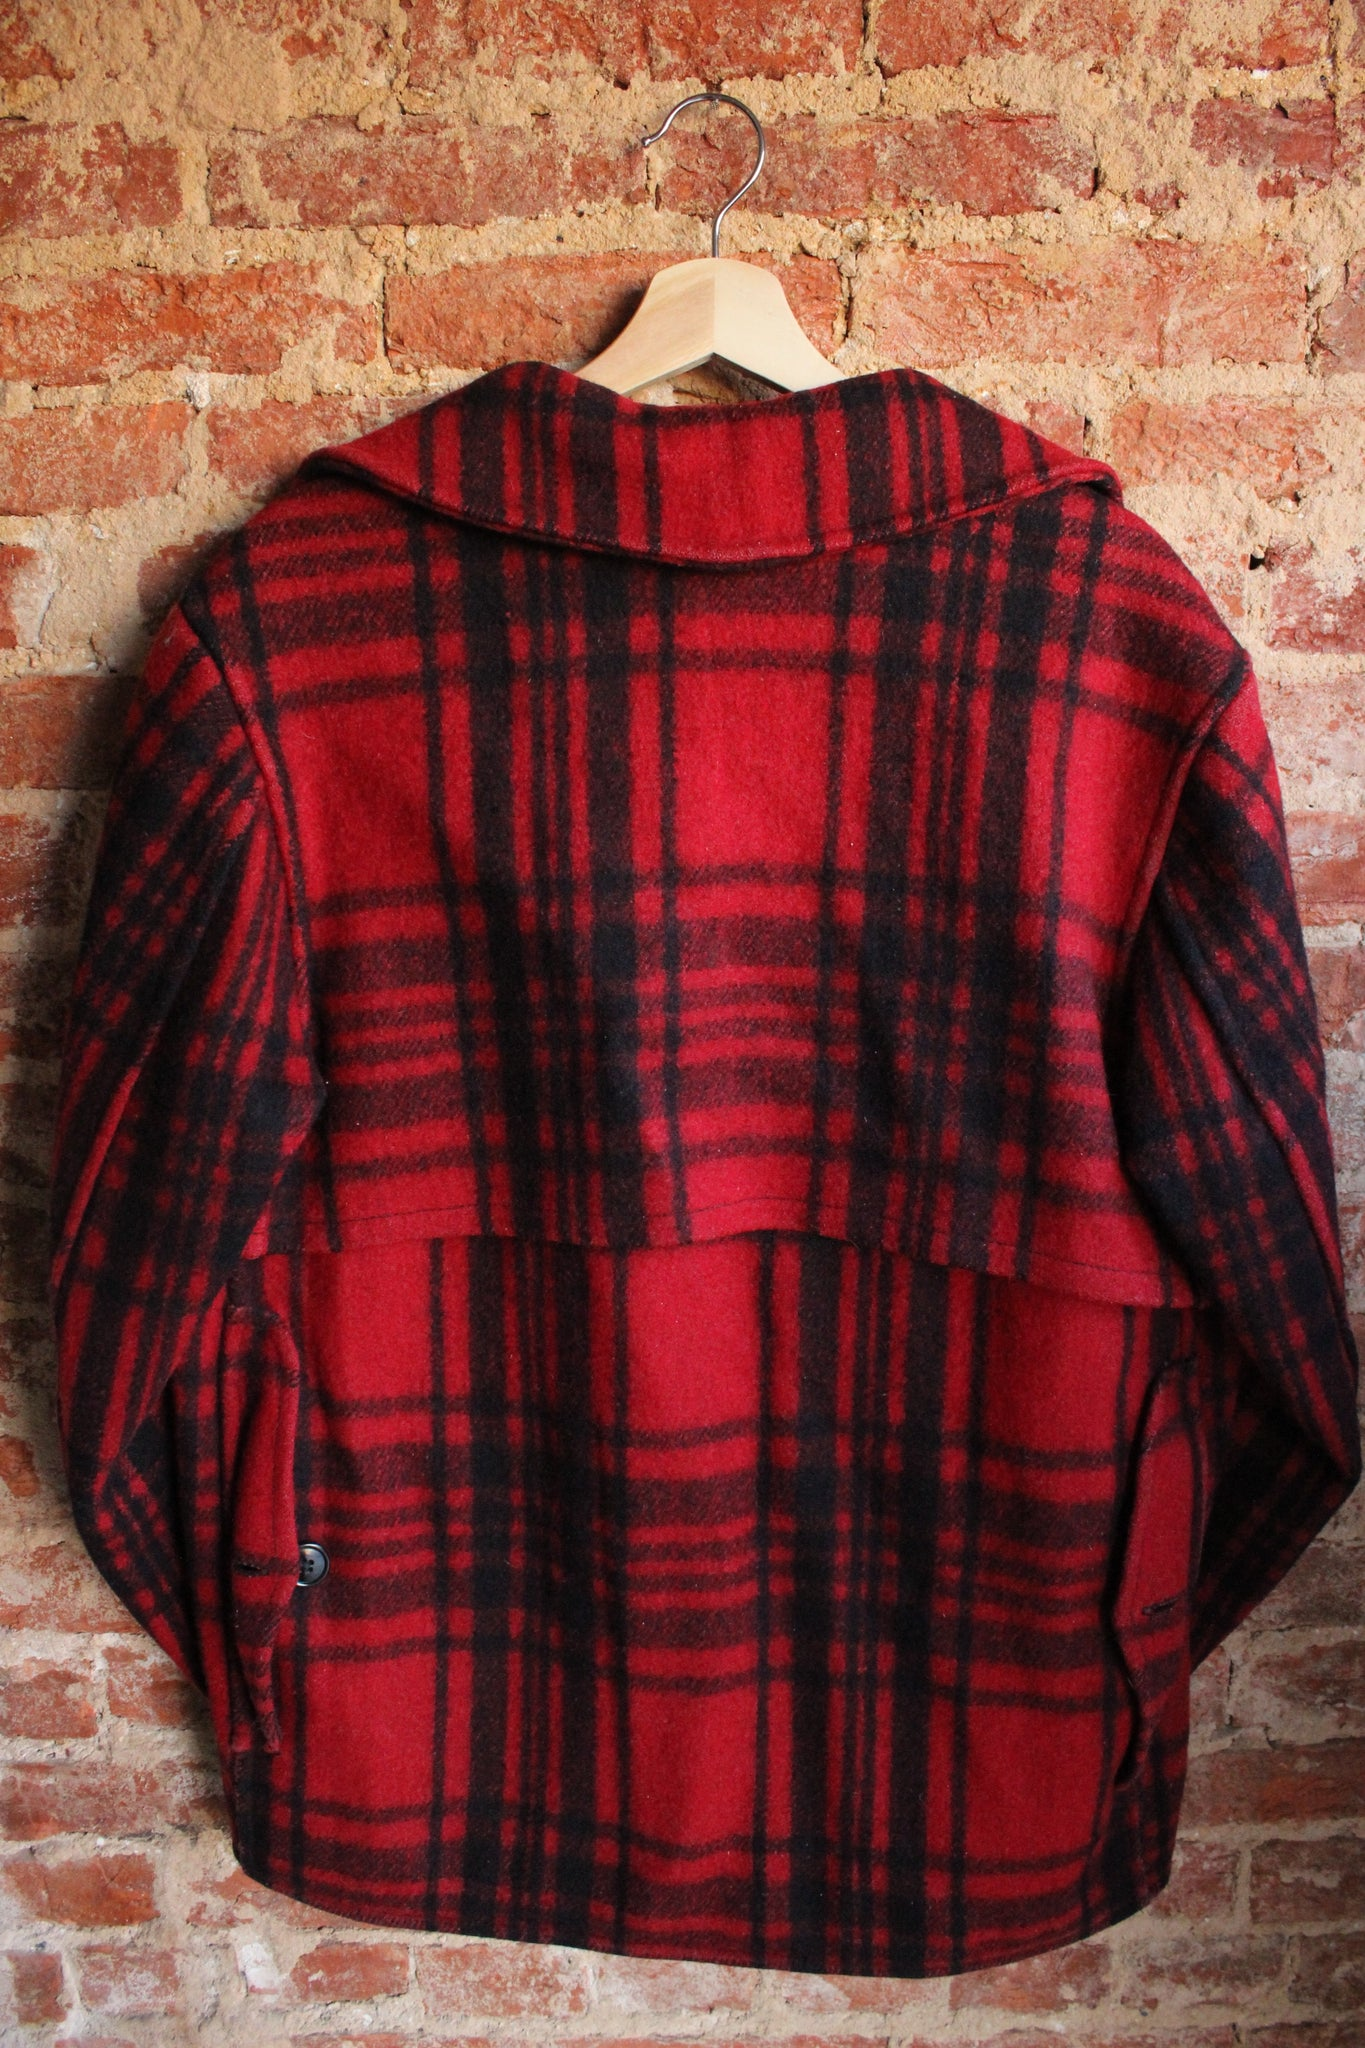 SOO WOOL Plaid Jacket